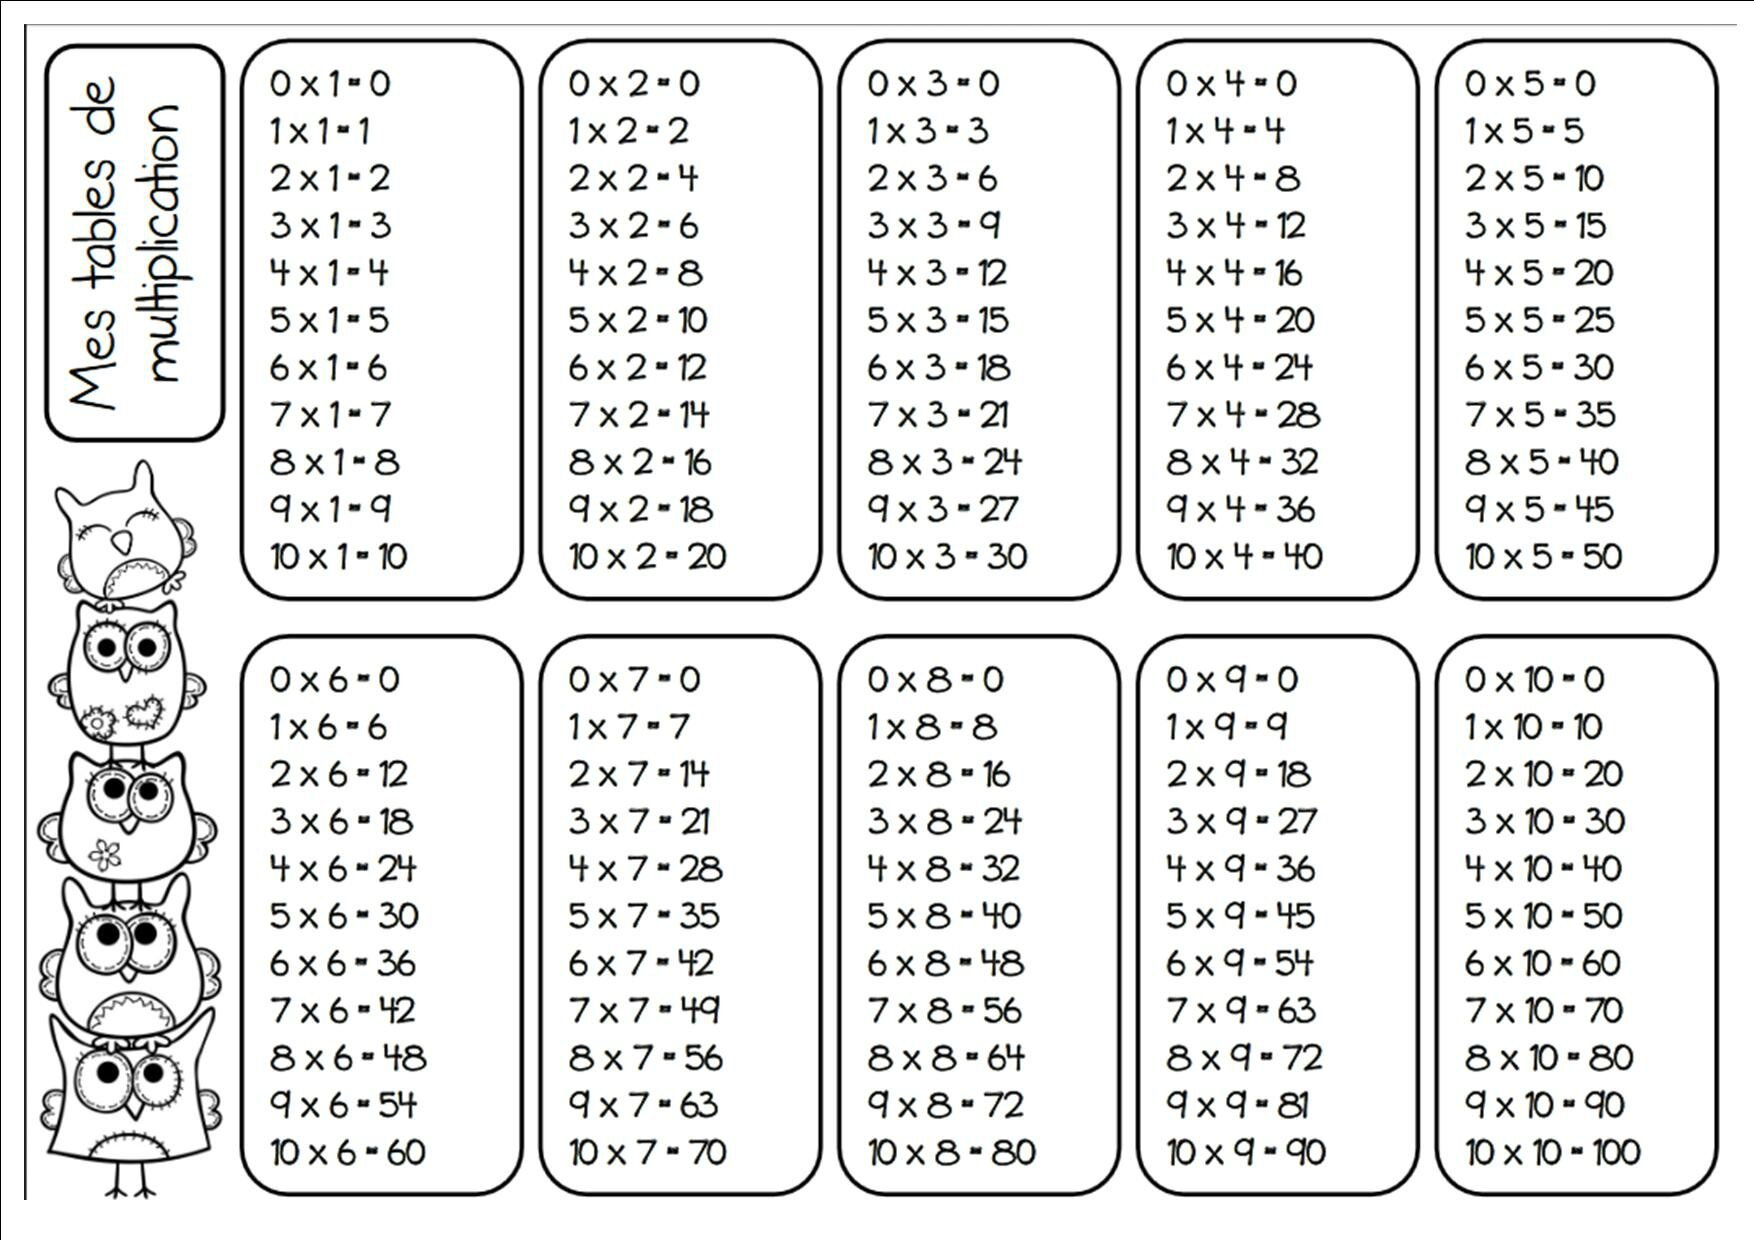 Table de multiplication ce2 - Reviser les tables de multiplication ce2 ...